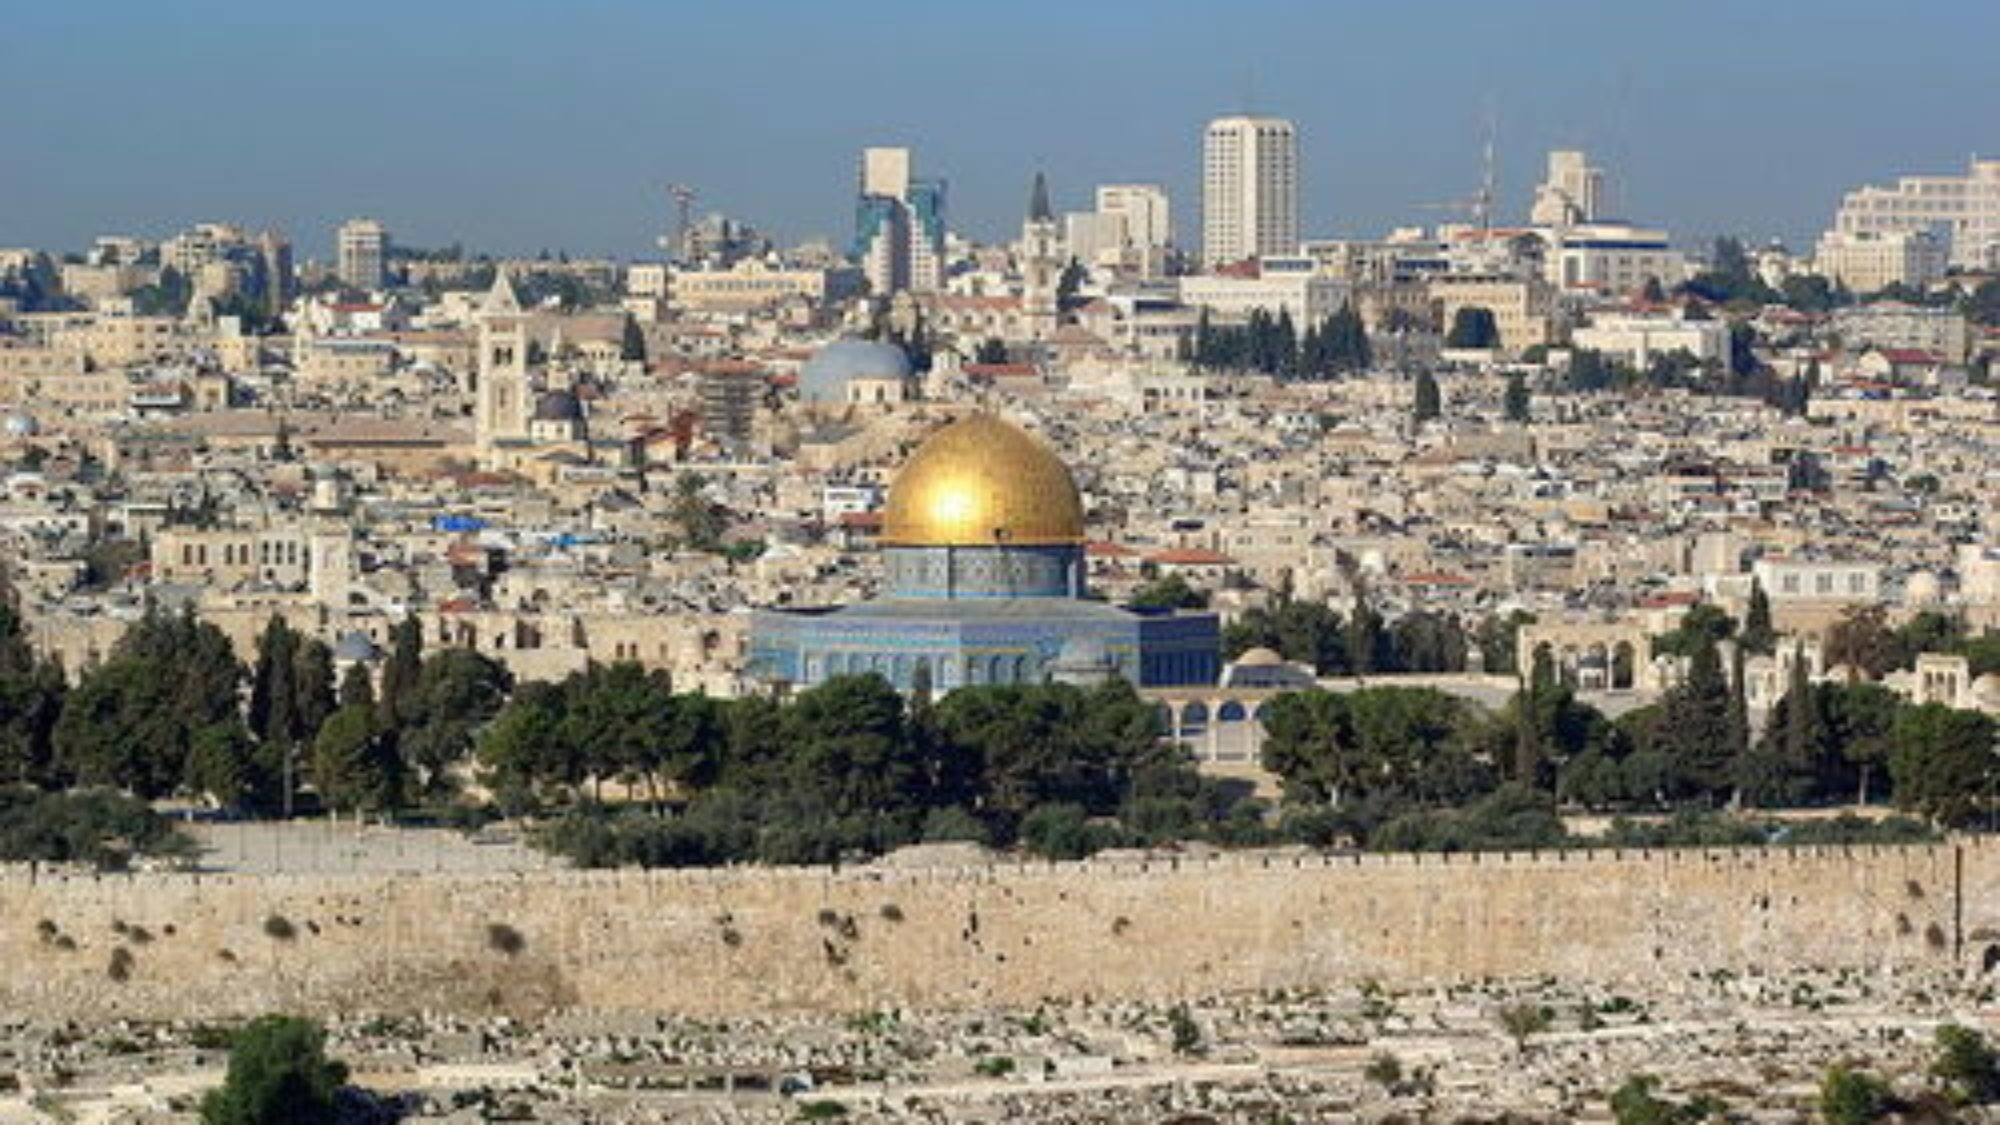 """A view of Jerusalem. The U.S. embassy in Israel has never been moved from Tel Aviv to Jerusalem despite the Congressional passage of the Jerusalem Embassy Relocation Act in 1995, and the reason is a """"national security waiver,"""" writes Stephen M. Flatow. Credit: Berthold Werner via Wikimedia Commons."""